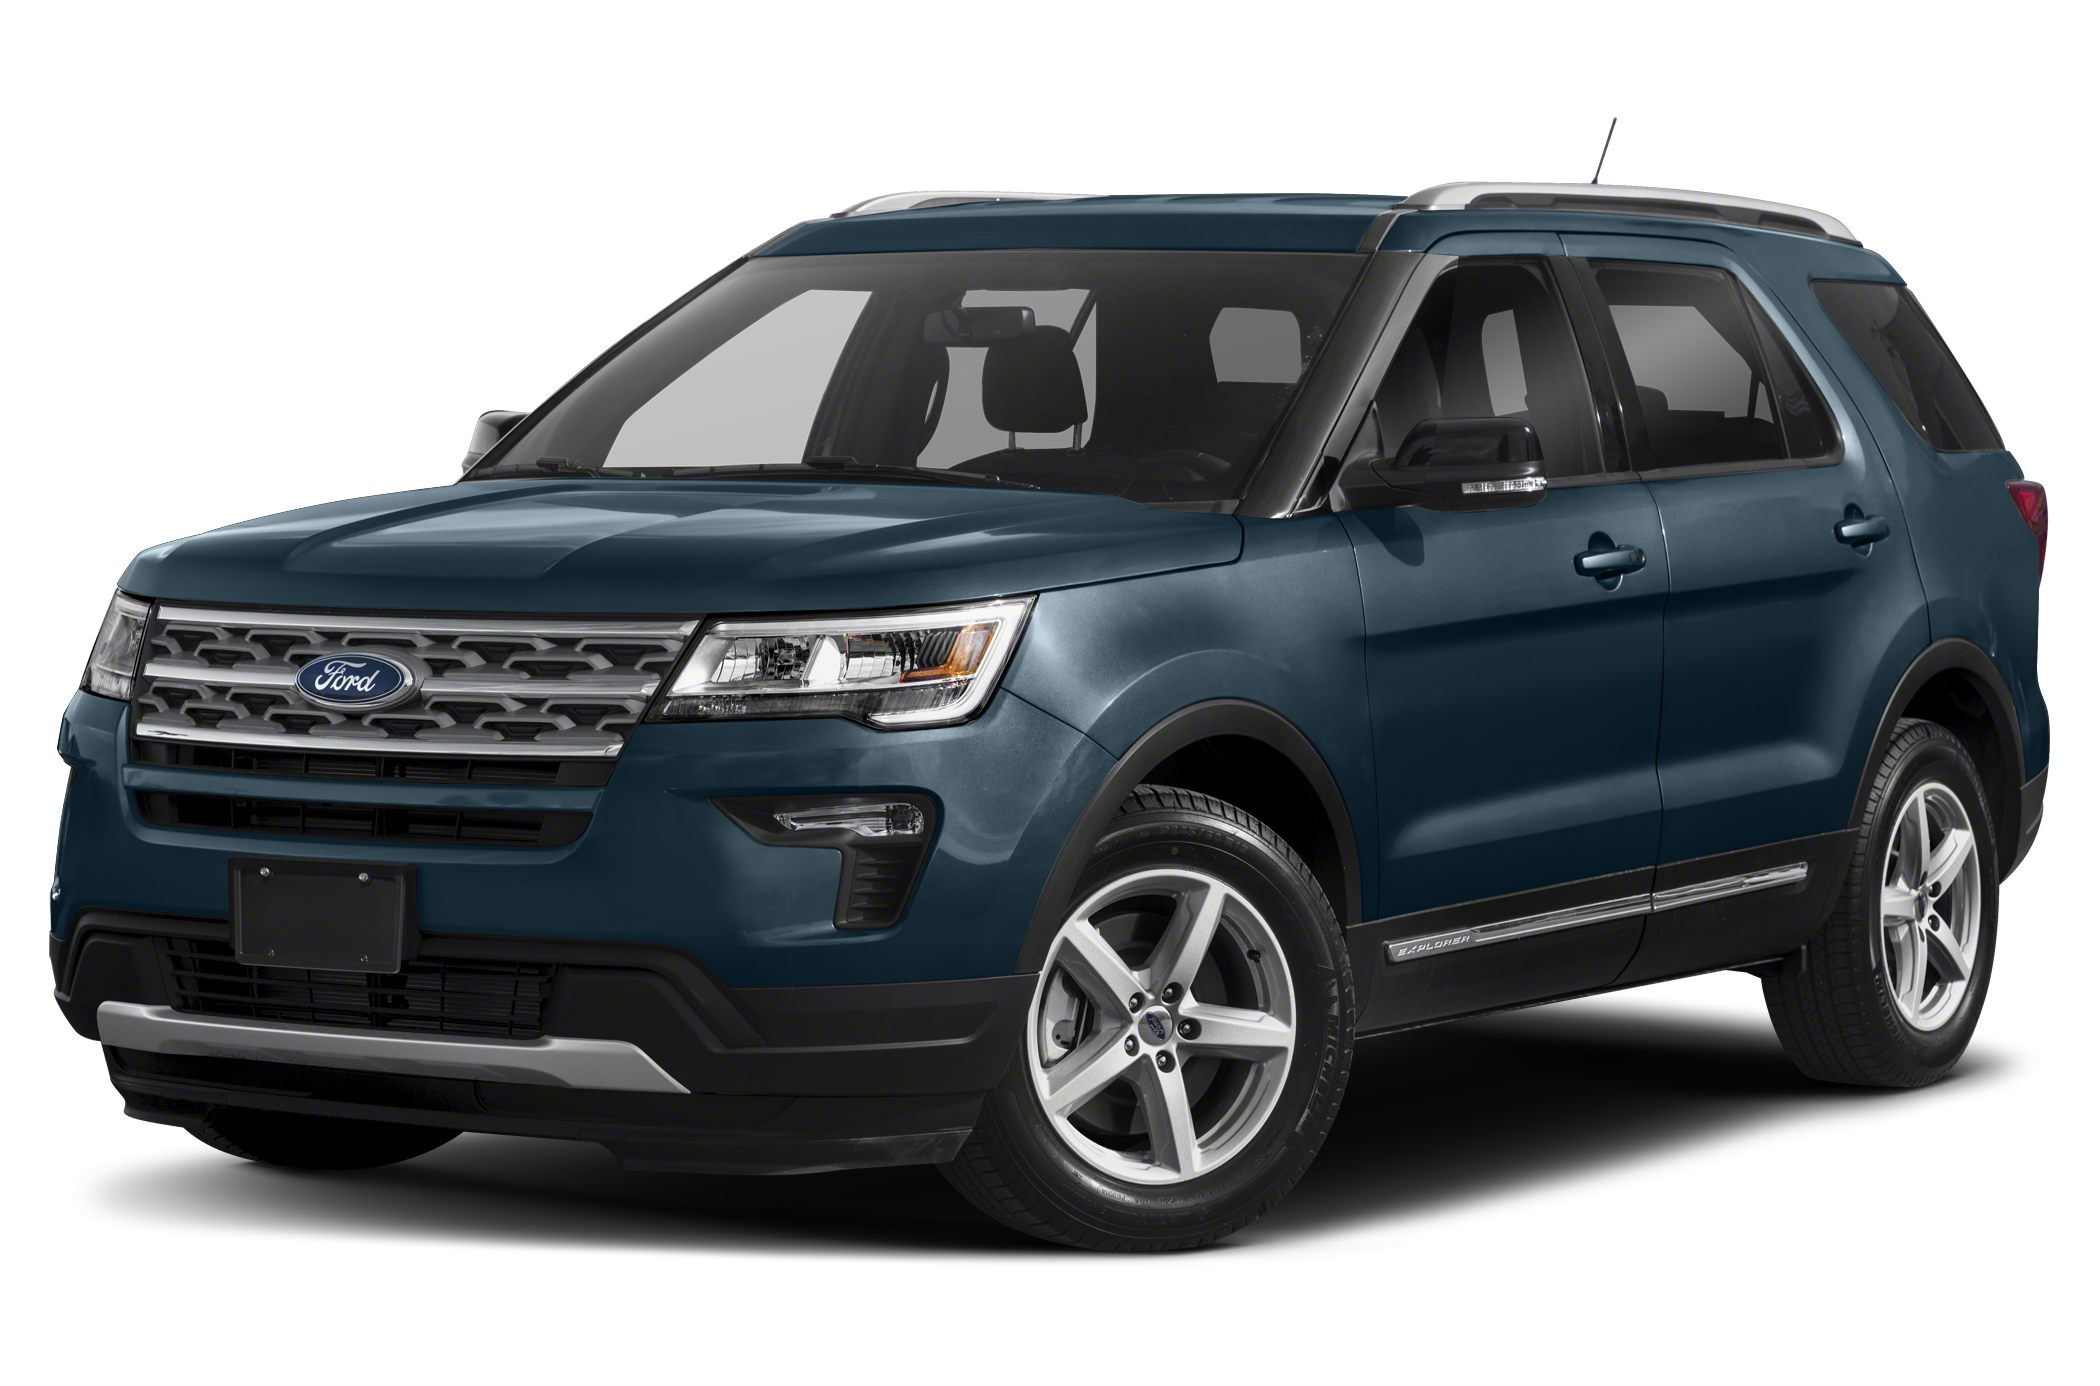 Acura Lease Deals >> 2018 Ford Explorer Deals, Prices, Incentives & Leases, Overview - CarsDirect